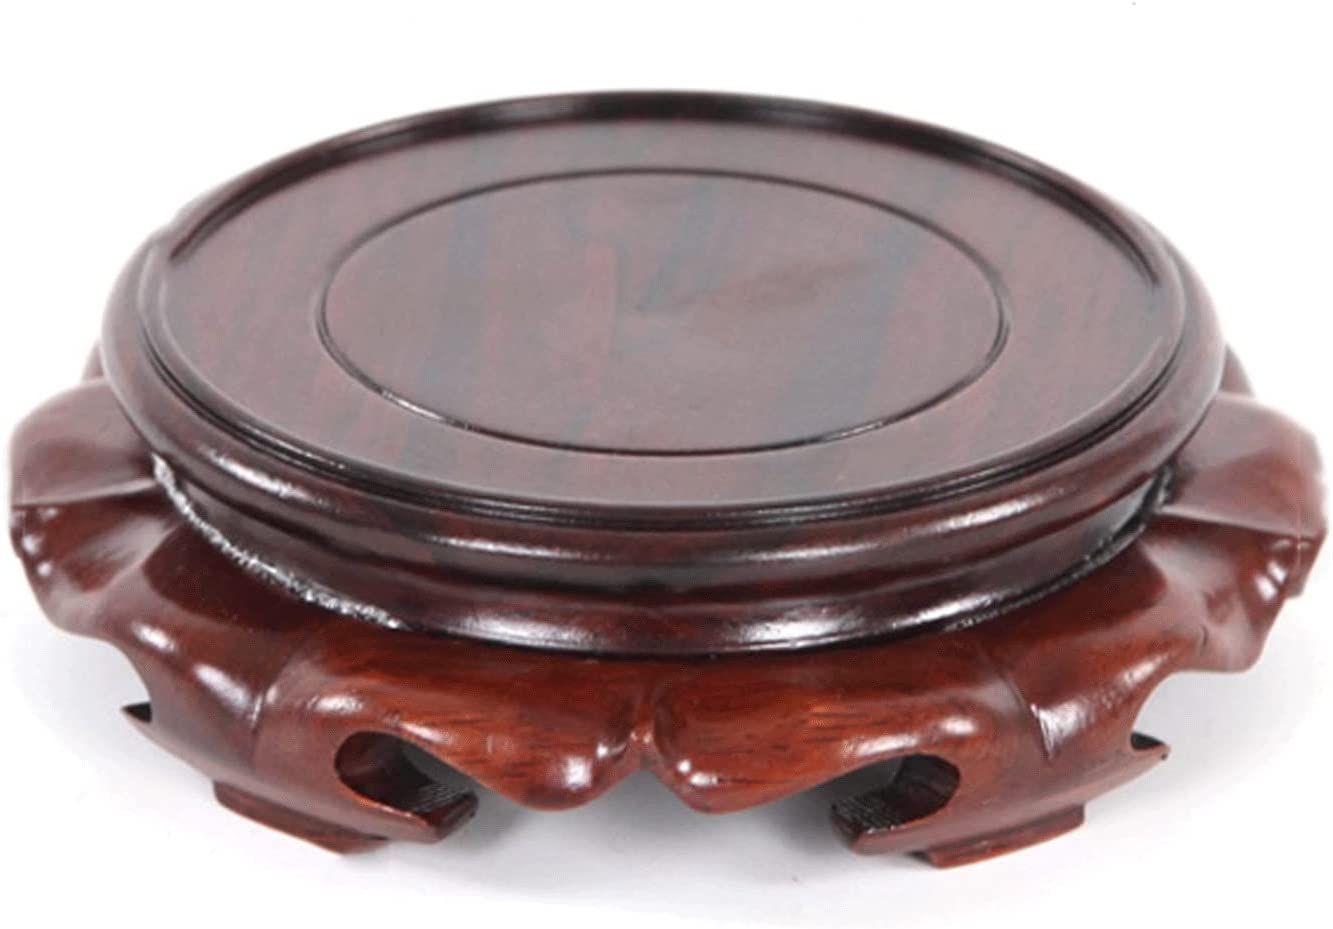 outlet YI0877CHANG Quality inspection Vase Stand Wooden Rosewood Pedestal Round Base